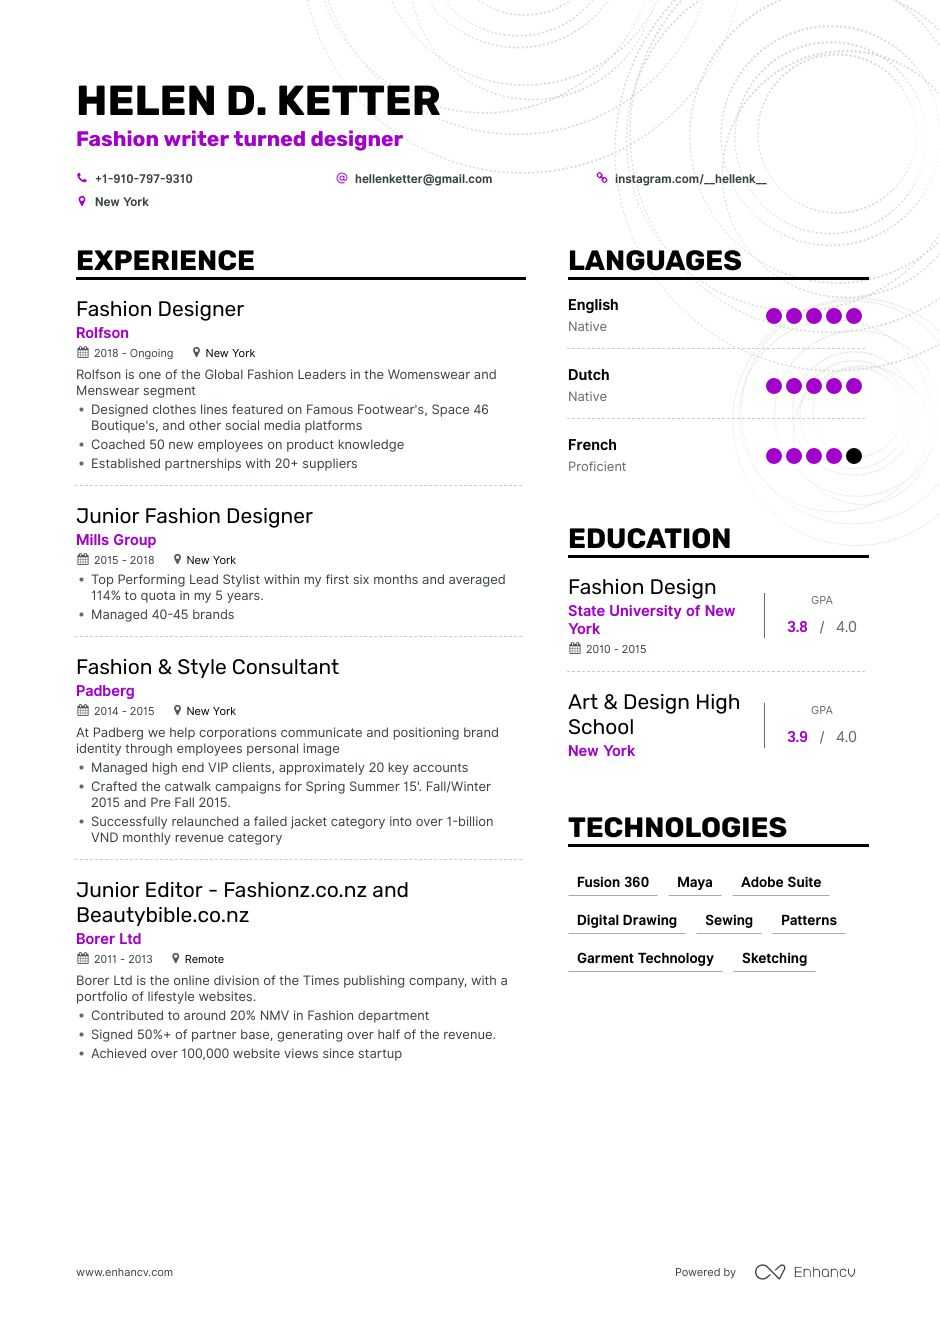 top fashion designer resume examples expert tips enhancv objective for restaurant manager Resume Objective For Fashion Designer Resume